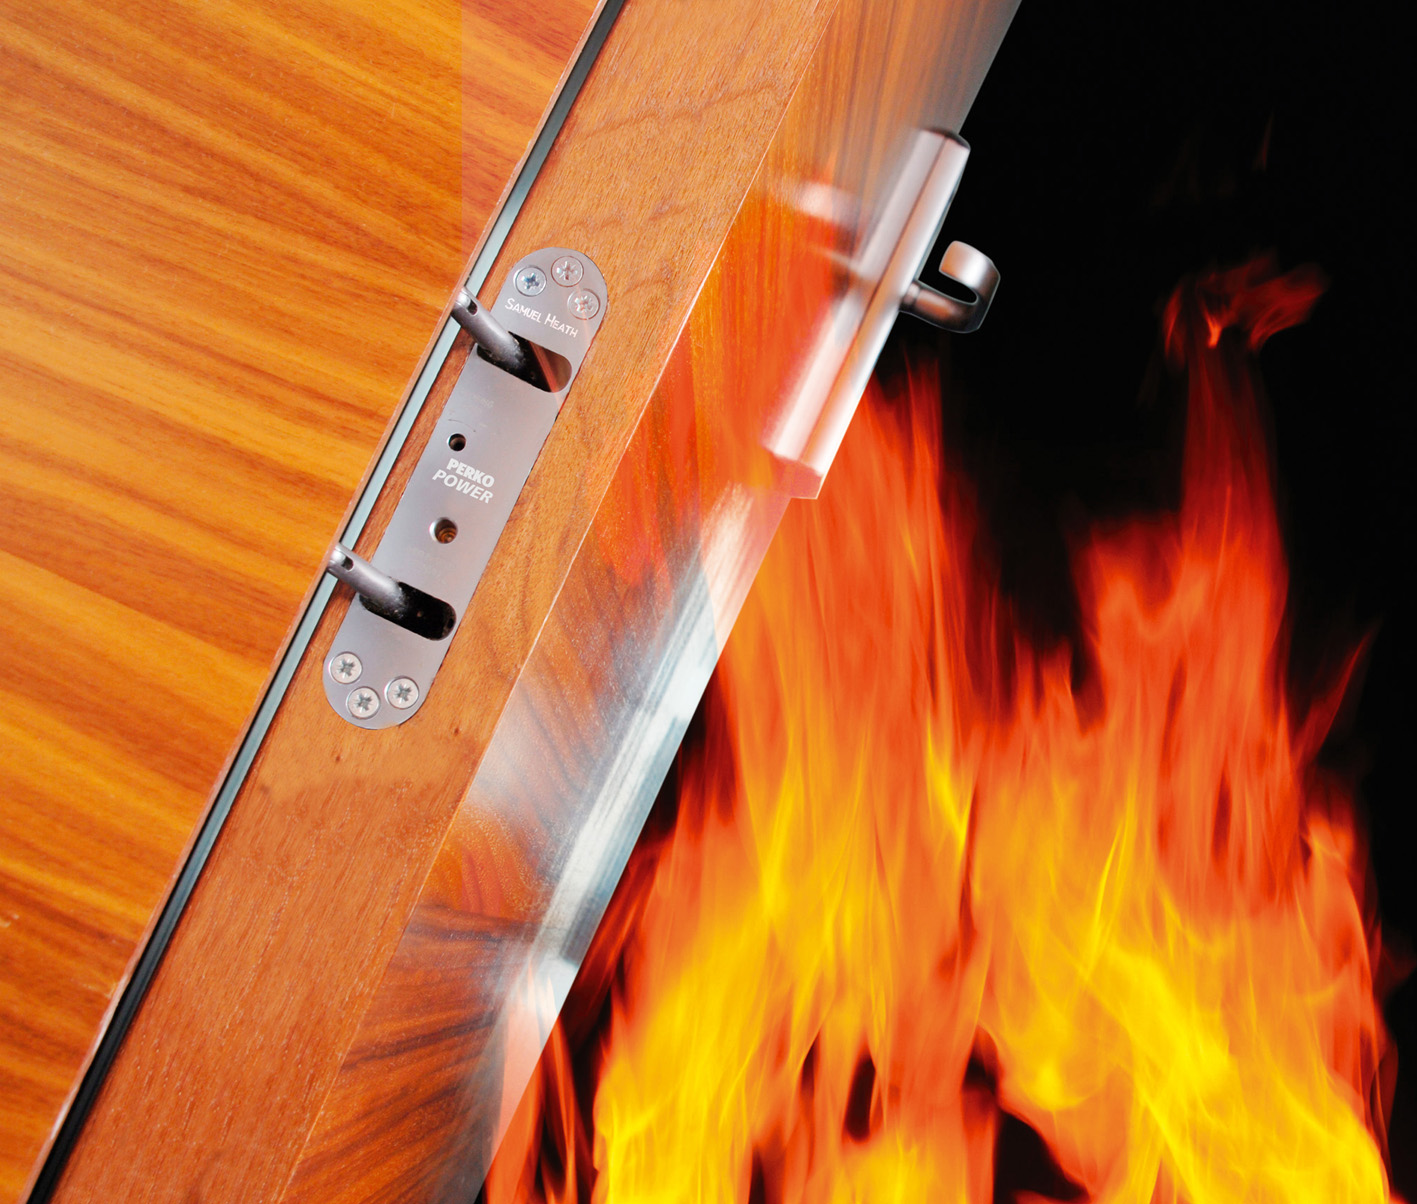 The Weakerthans This Is A Fire Door : New guidelines on fire door safety published show house